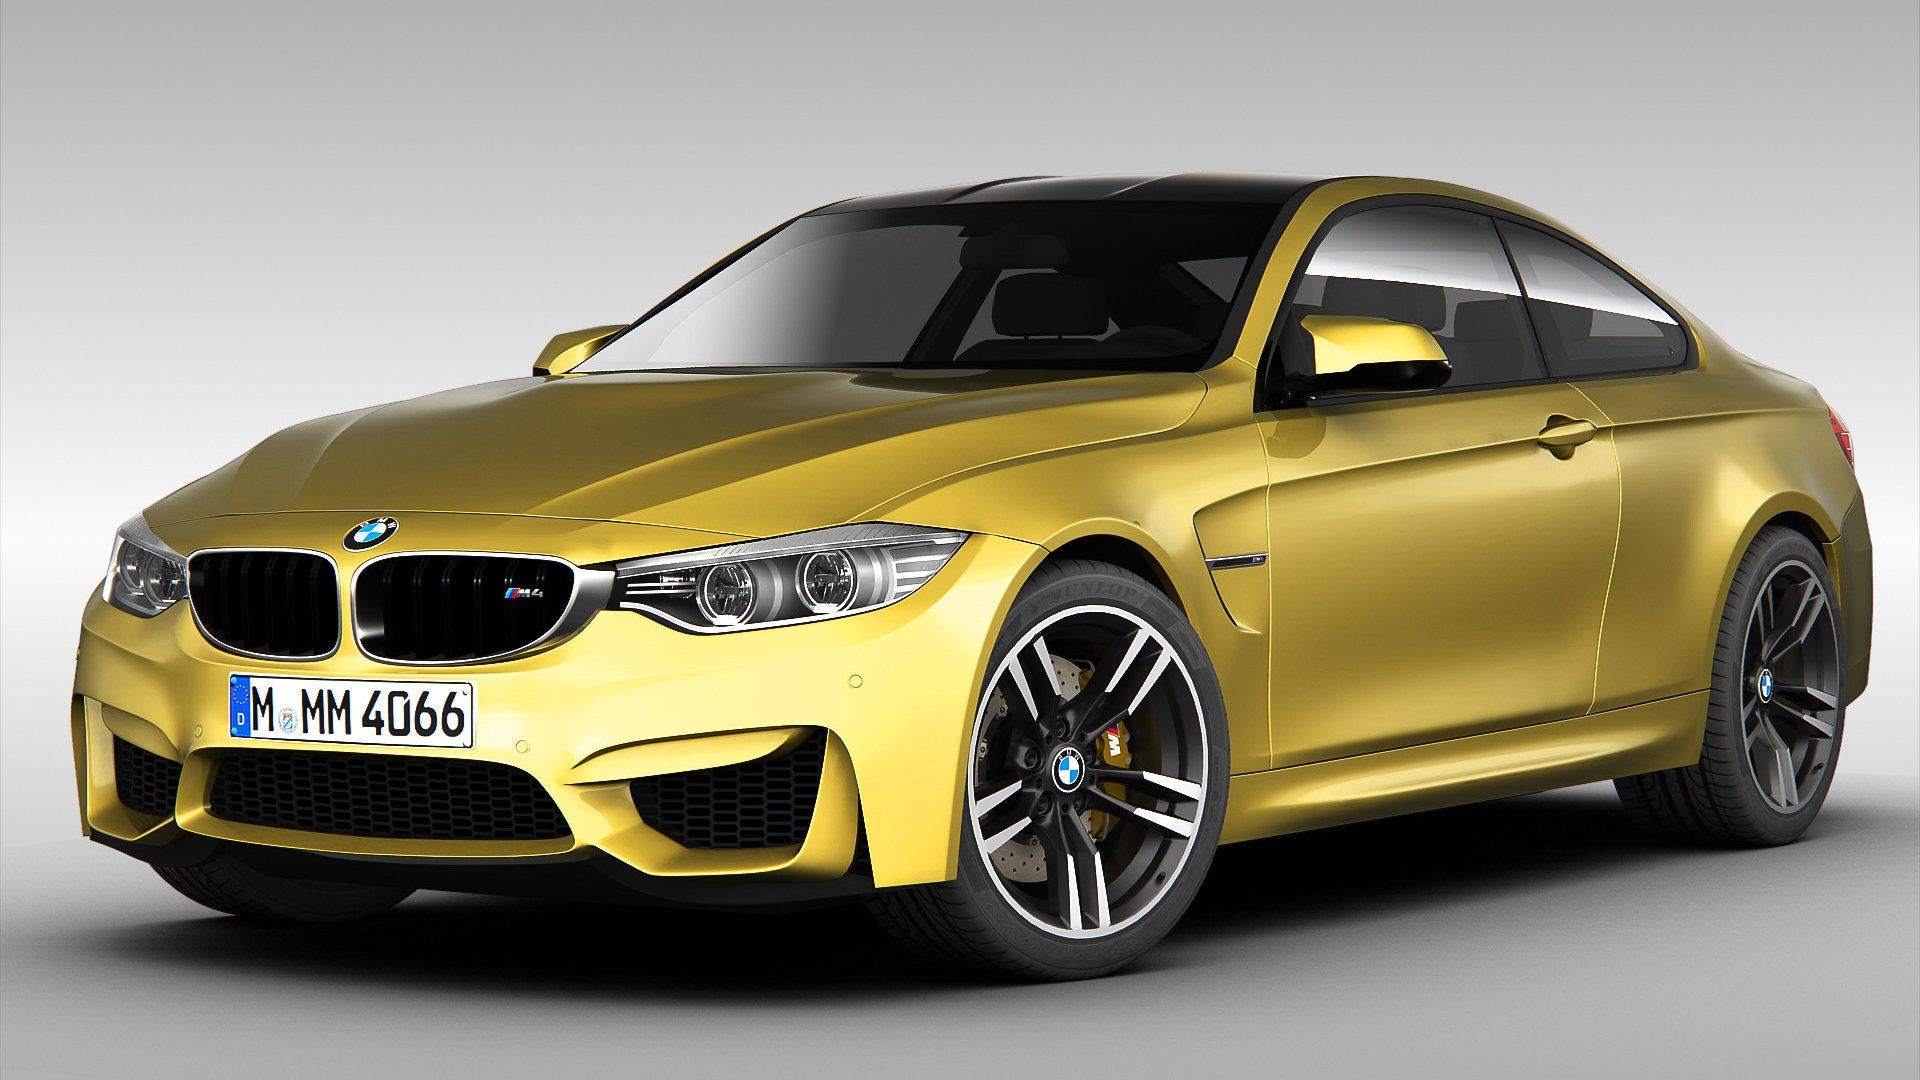 2015 BMW M4 Coupe HD Wallpaper 1080p Wallpaper | BMW ...